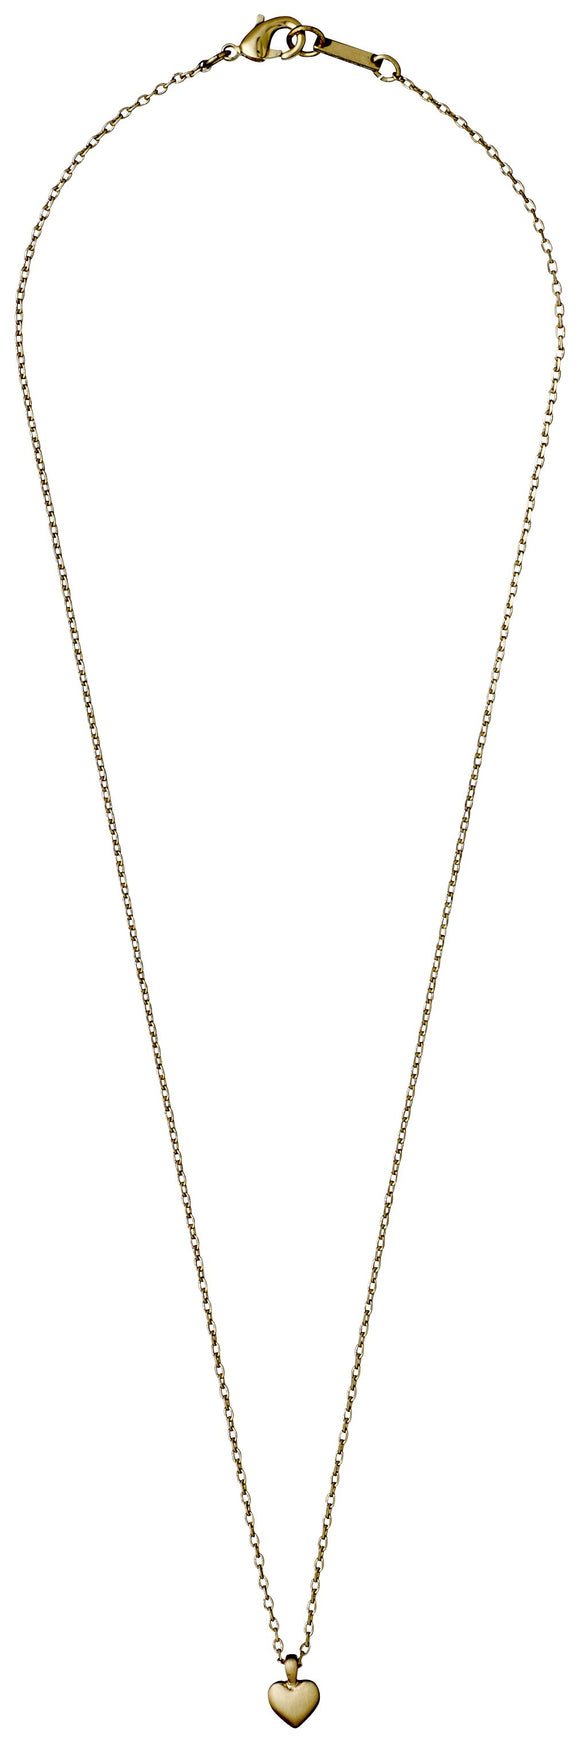 Sophia Heart Gold Necklace